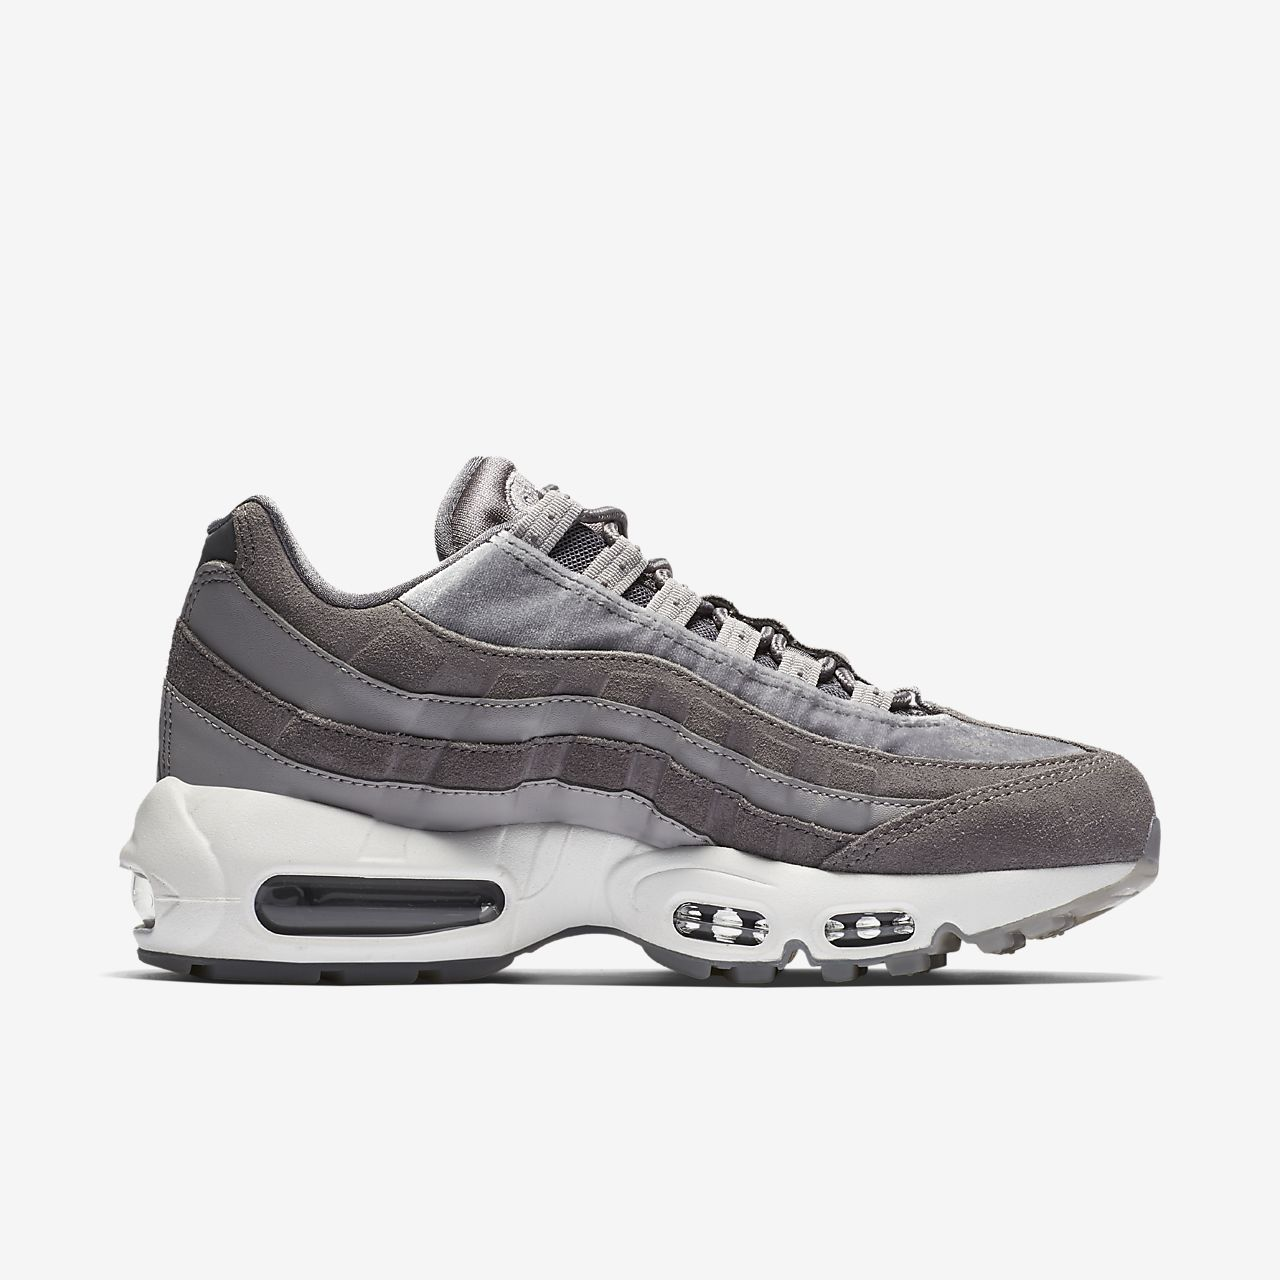 ... Nike Air Max 95 LX Women's Shoe